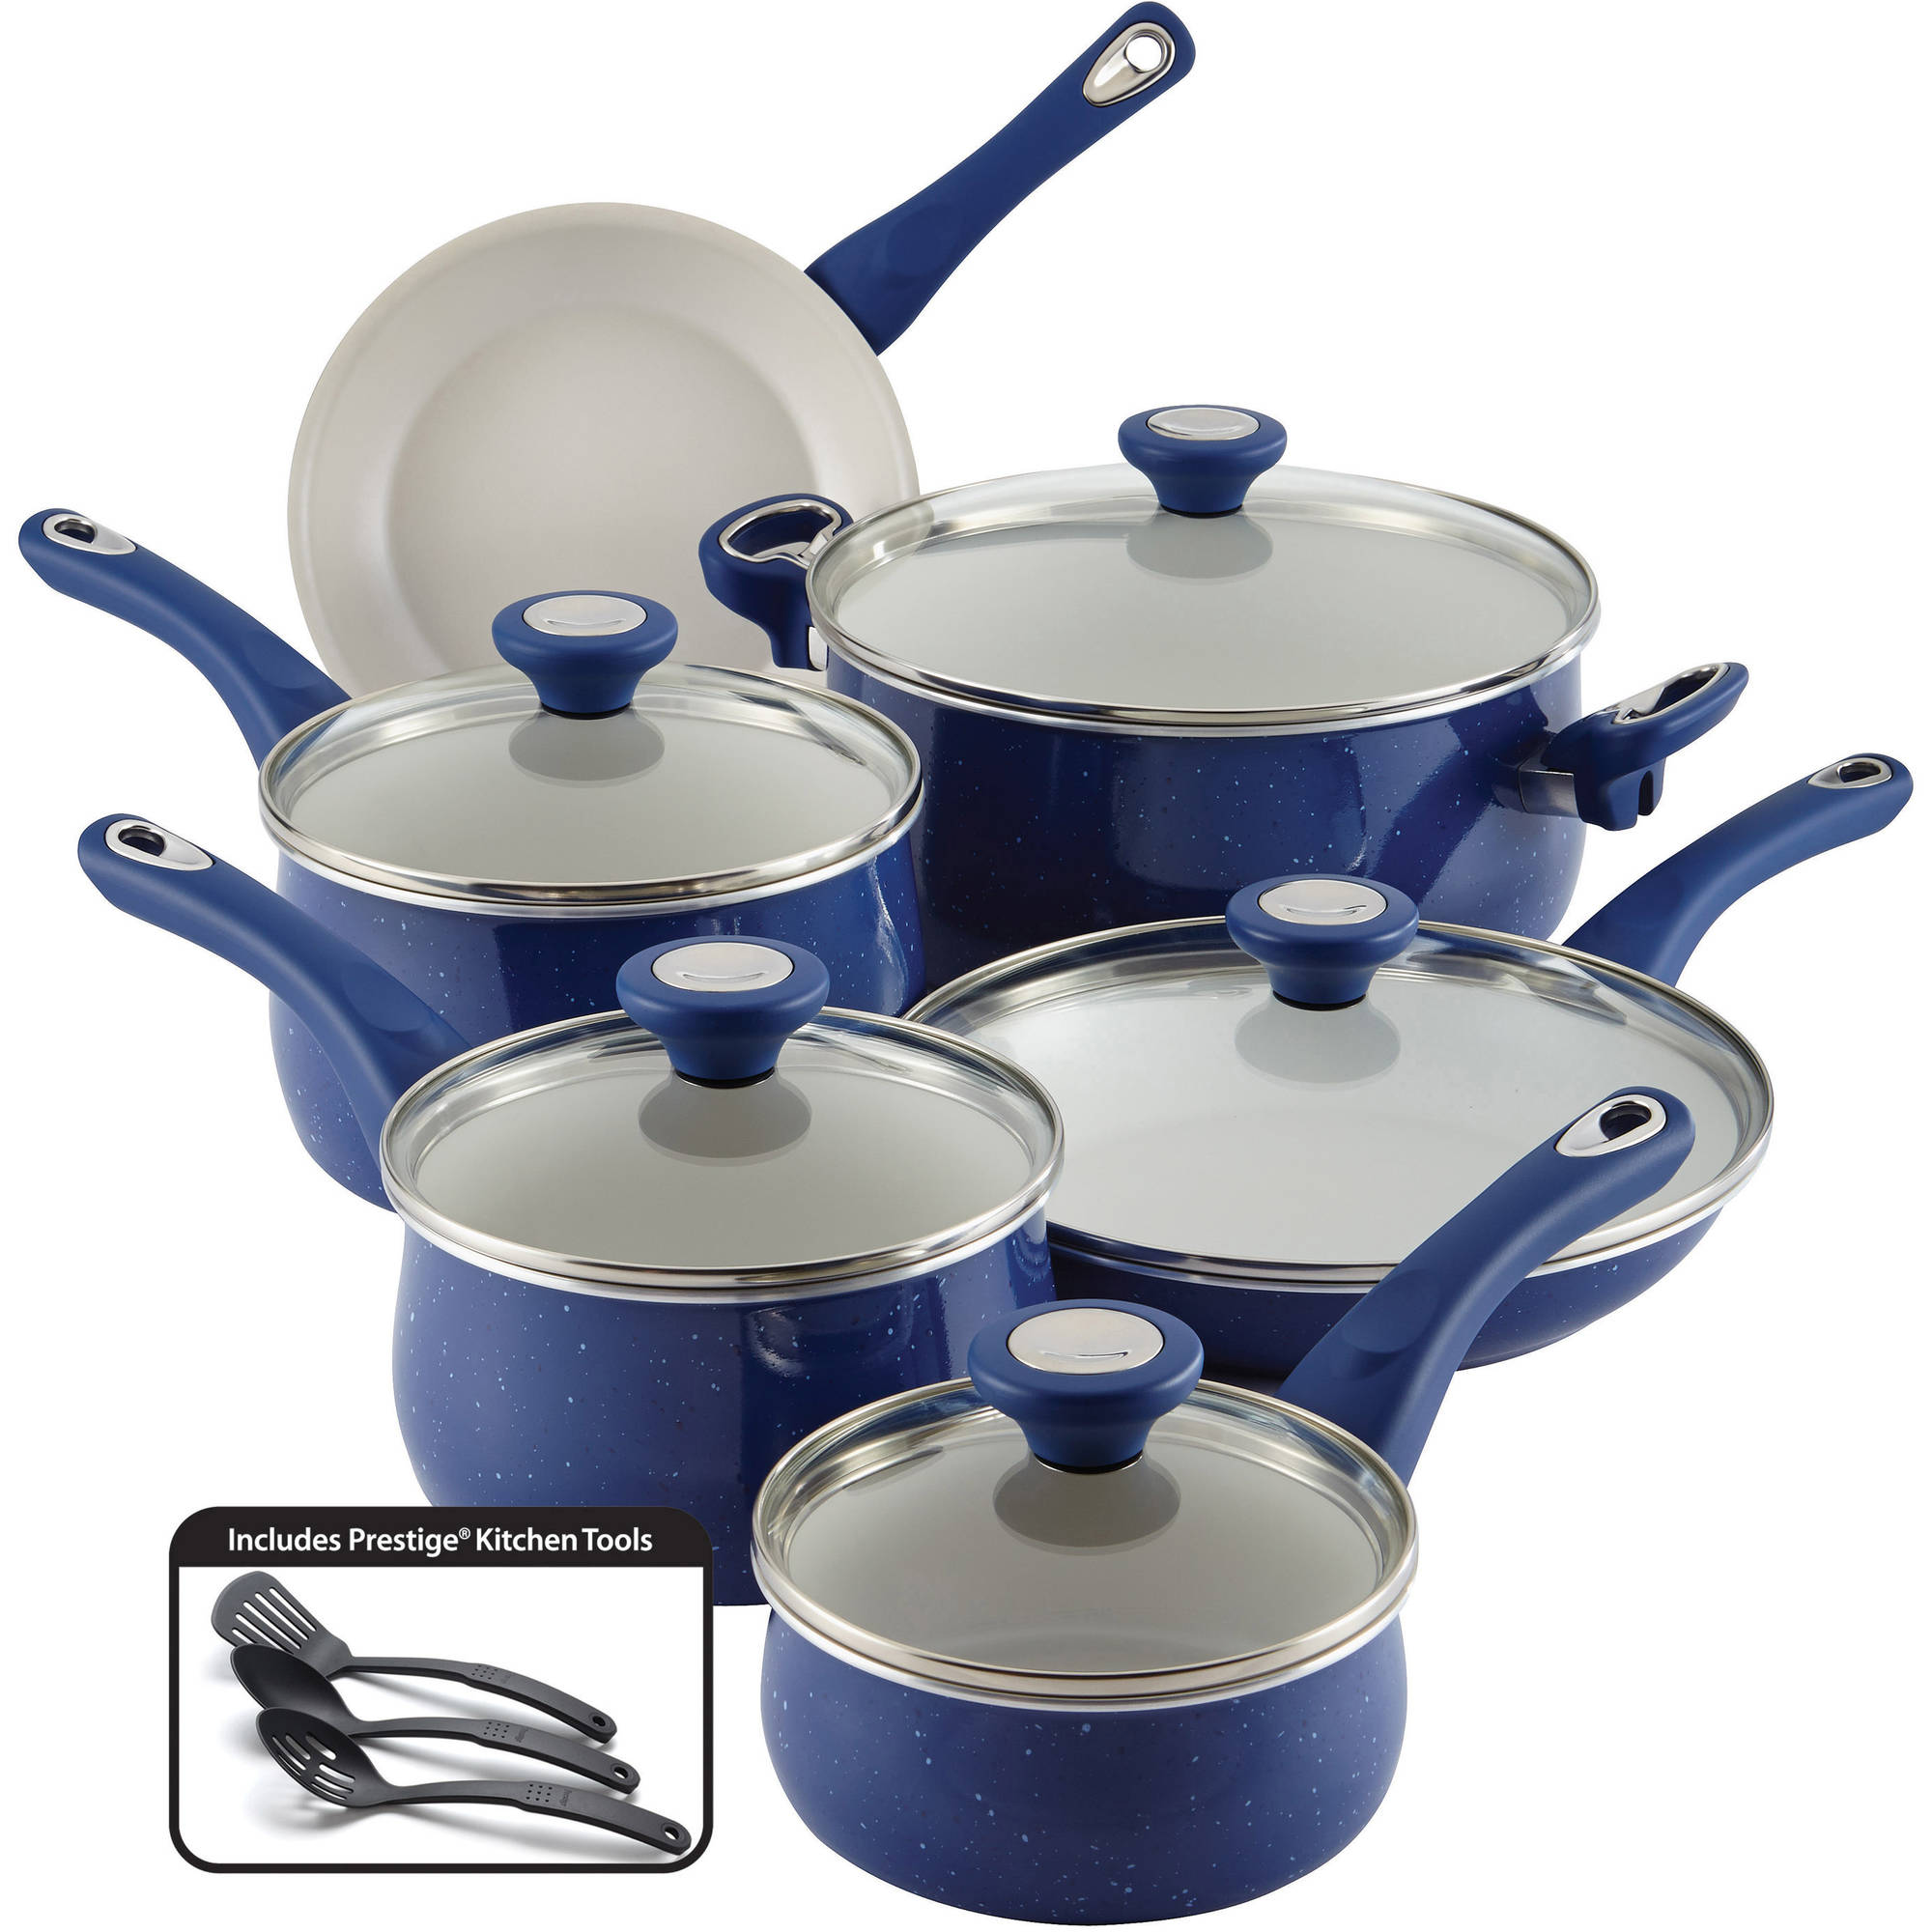 Farberware New Traditions Speckled Aluminum Nonstick 14-Piece Cookware Set